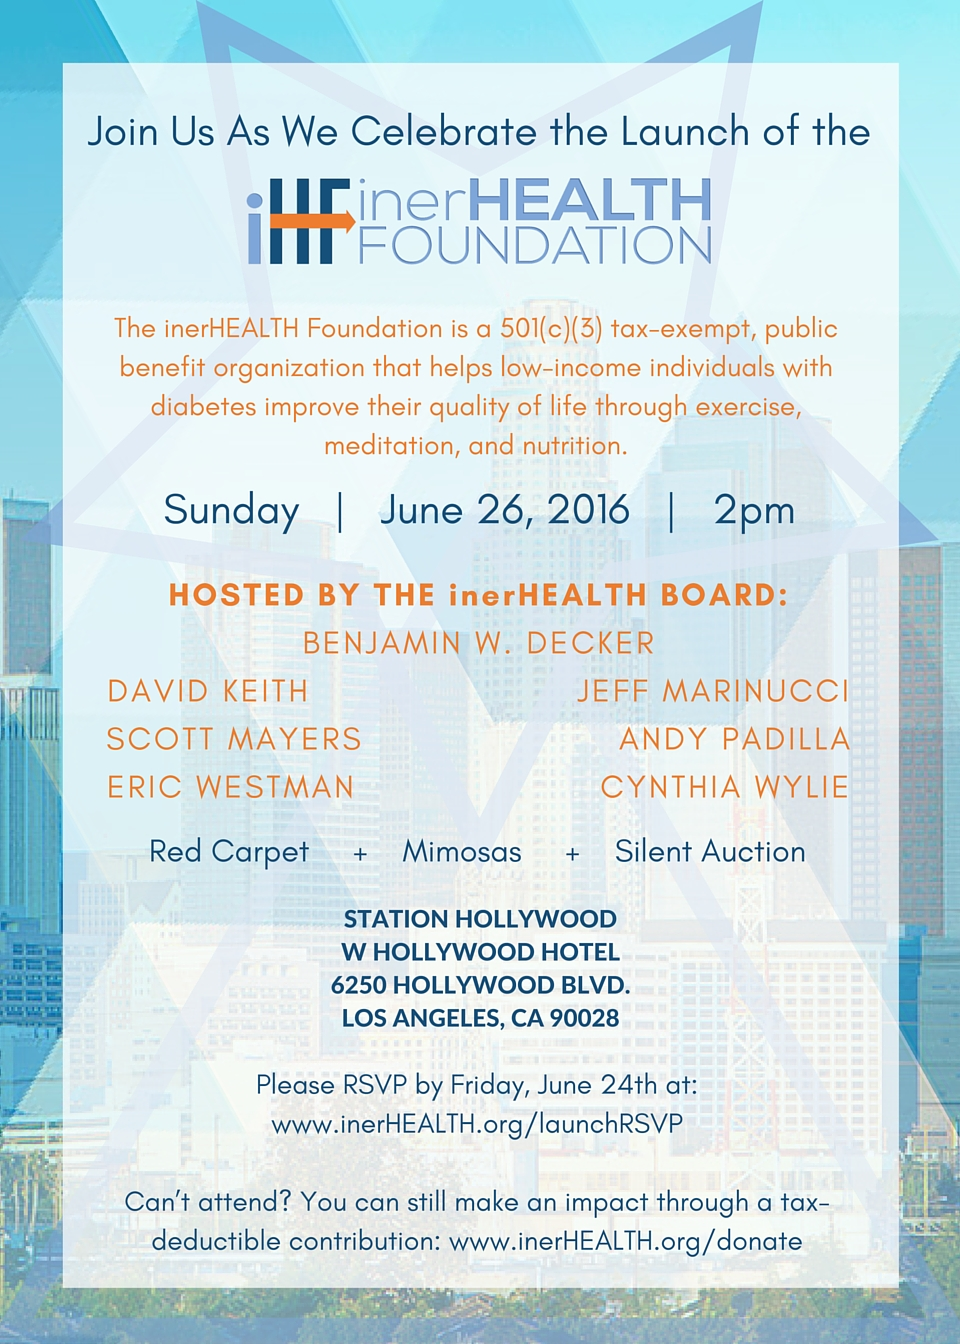 inerHEALTH Launch Event Invitation